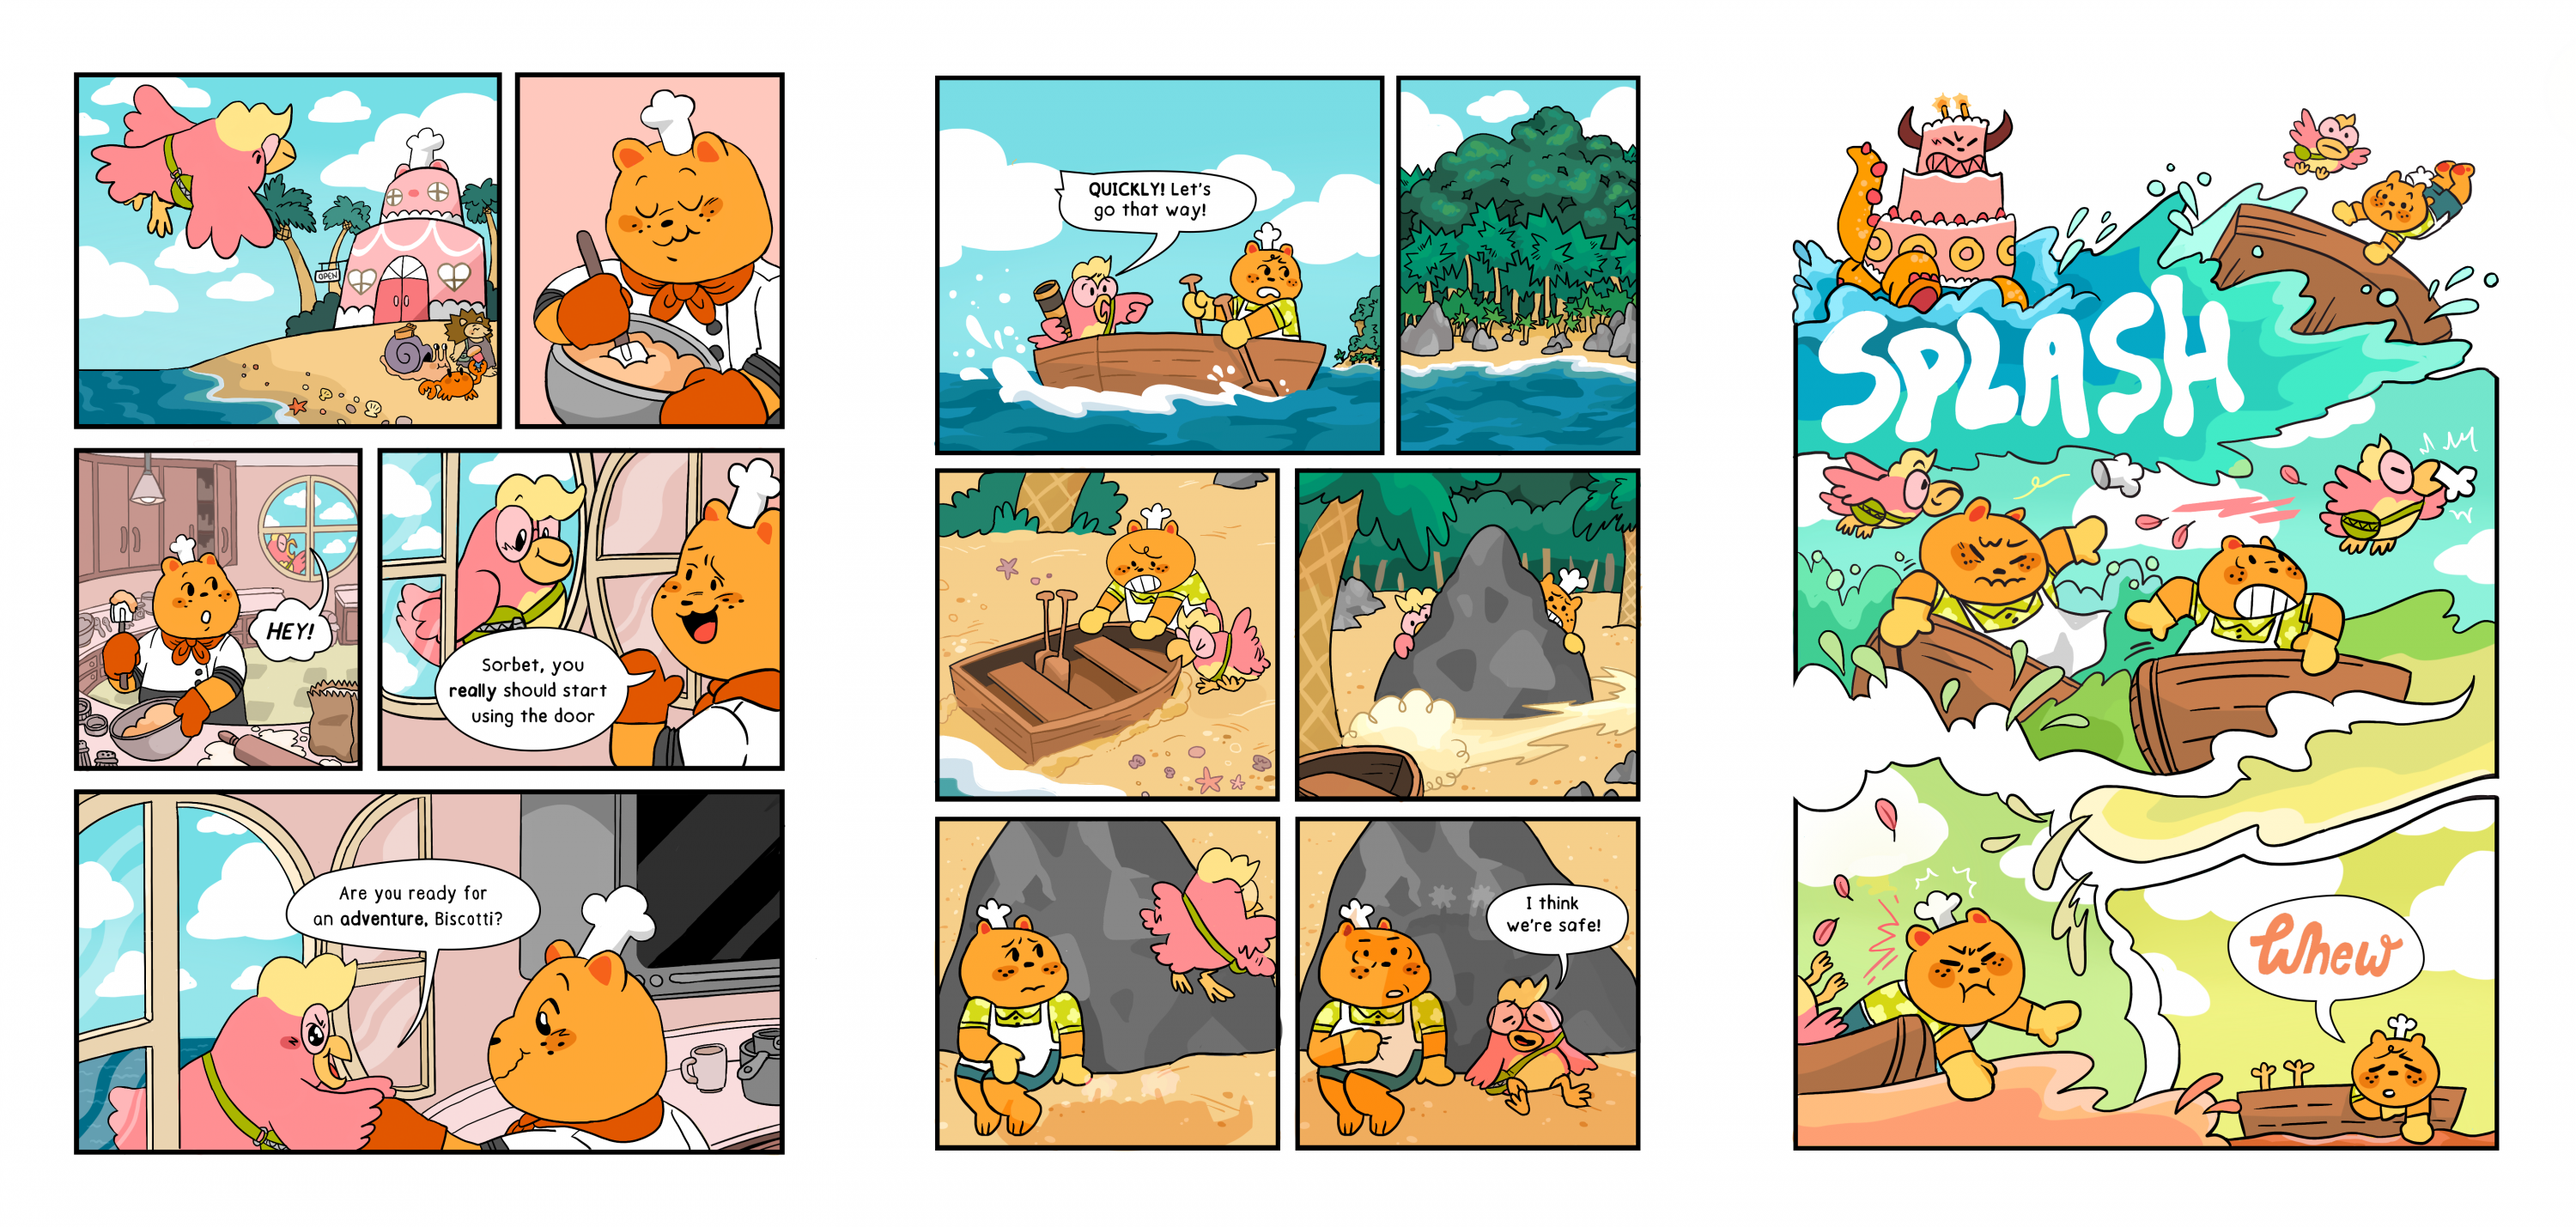 The following pages are not in sequential order. Page one: A bird flies up to a bakery where a bear mixes a bowl inside. She asks the baker bear if he wants to go on an adventure with her. Page two: A bear and a bird frantically row a boat over to an isla